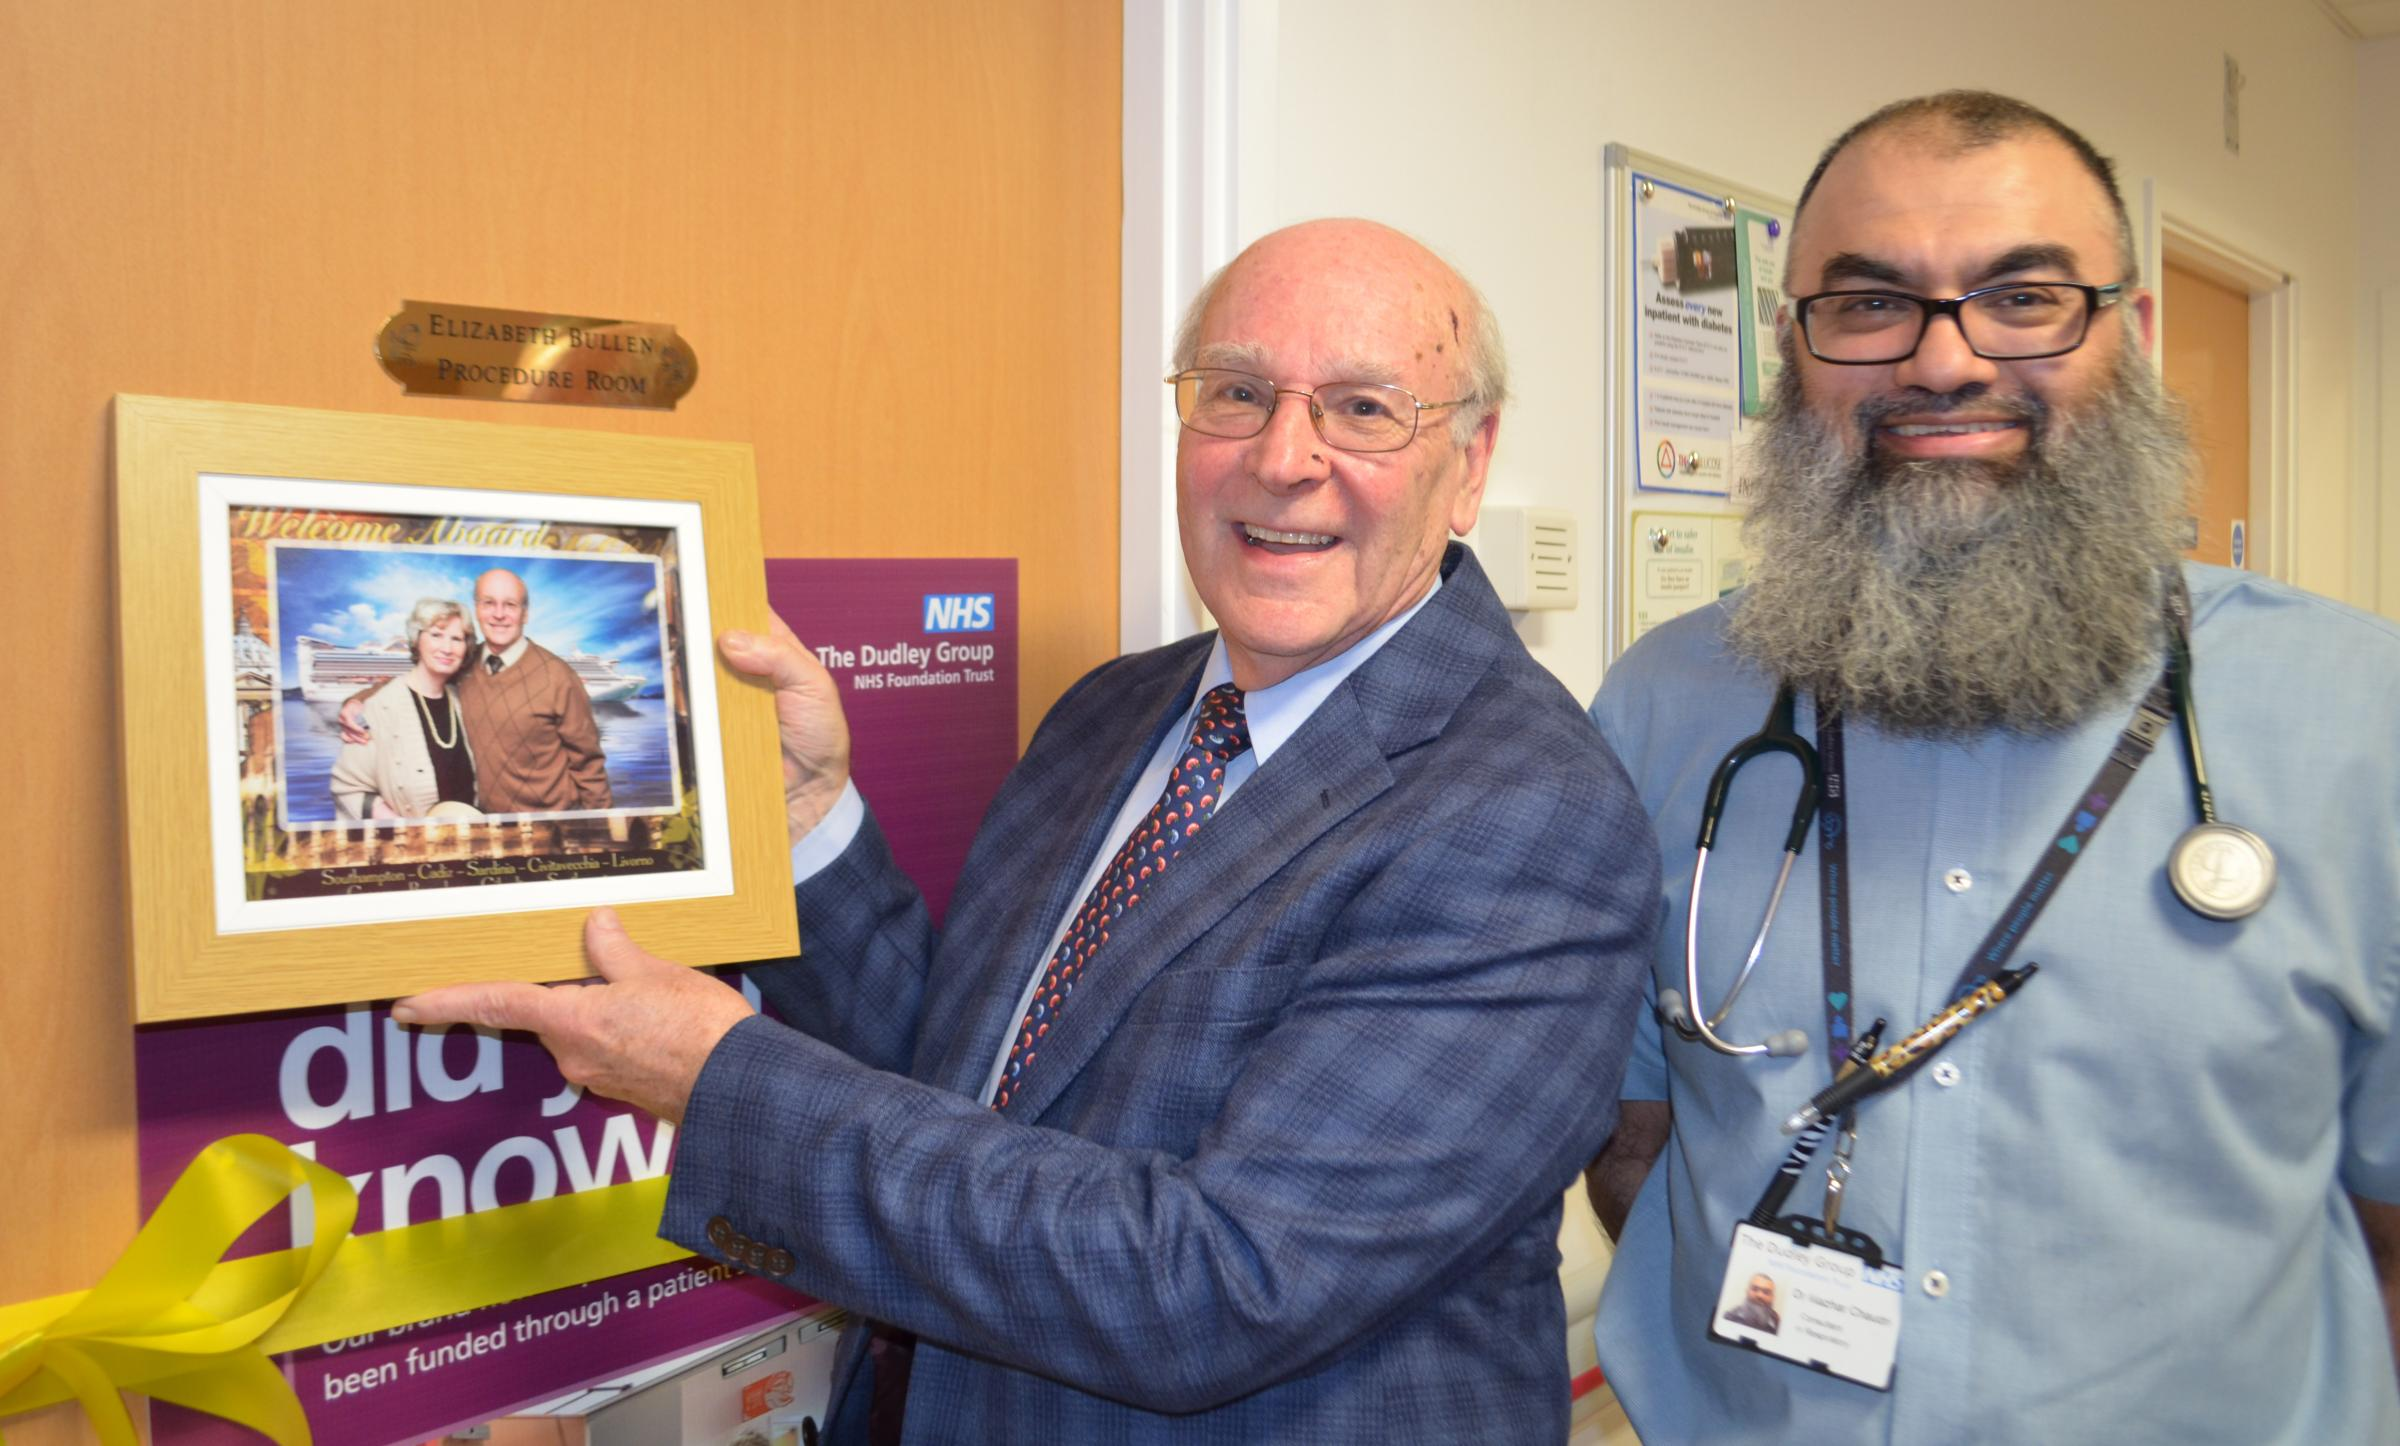 Michael Bullen with a photo of his late wife Liz and Dr Mazhar Chaudri